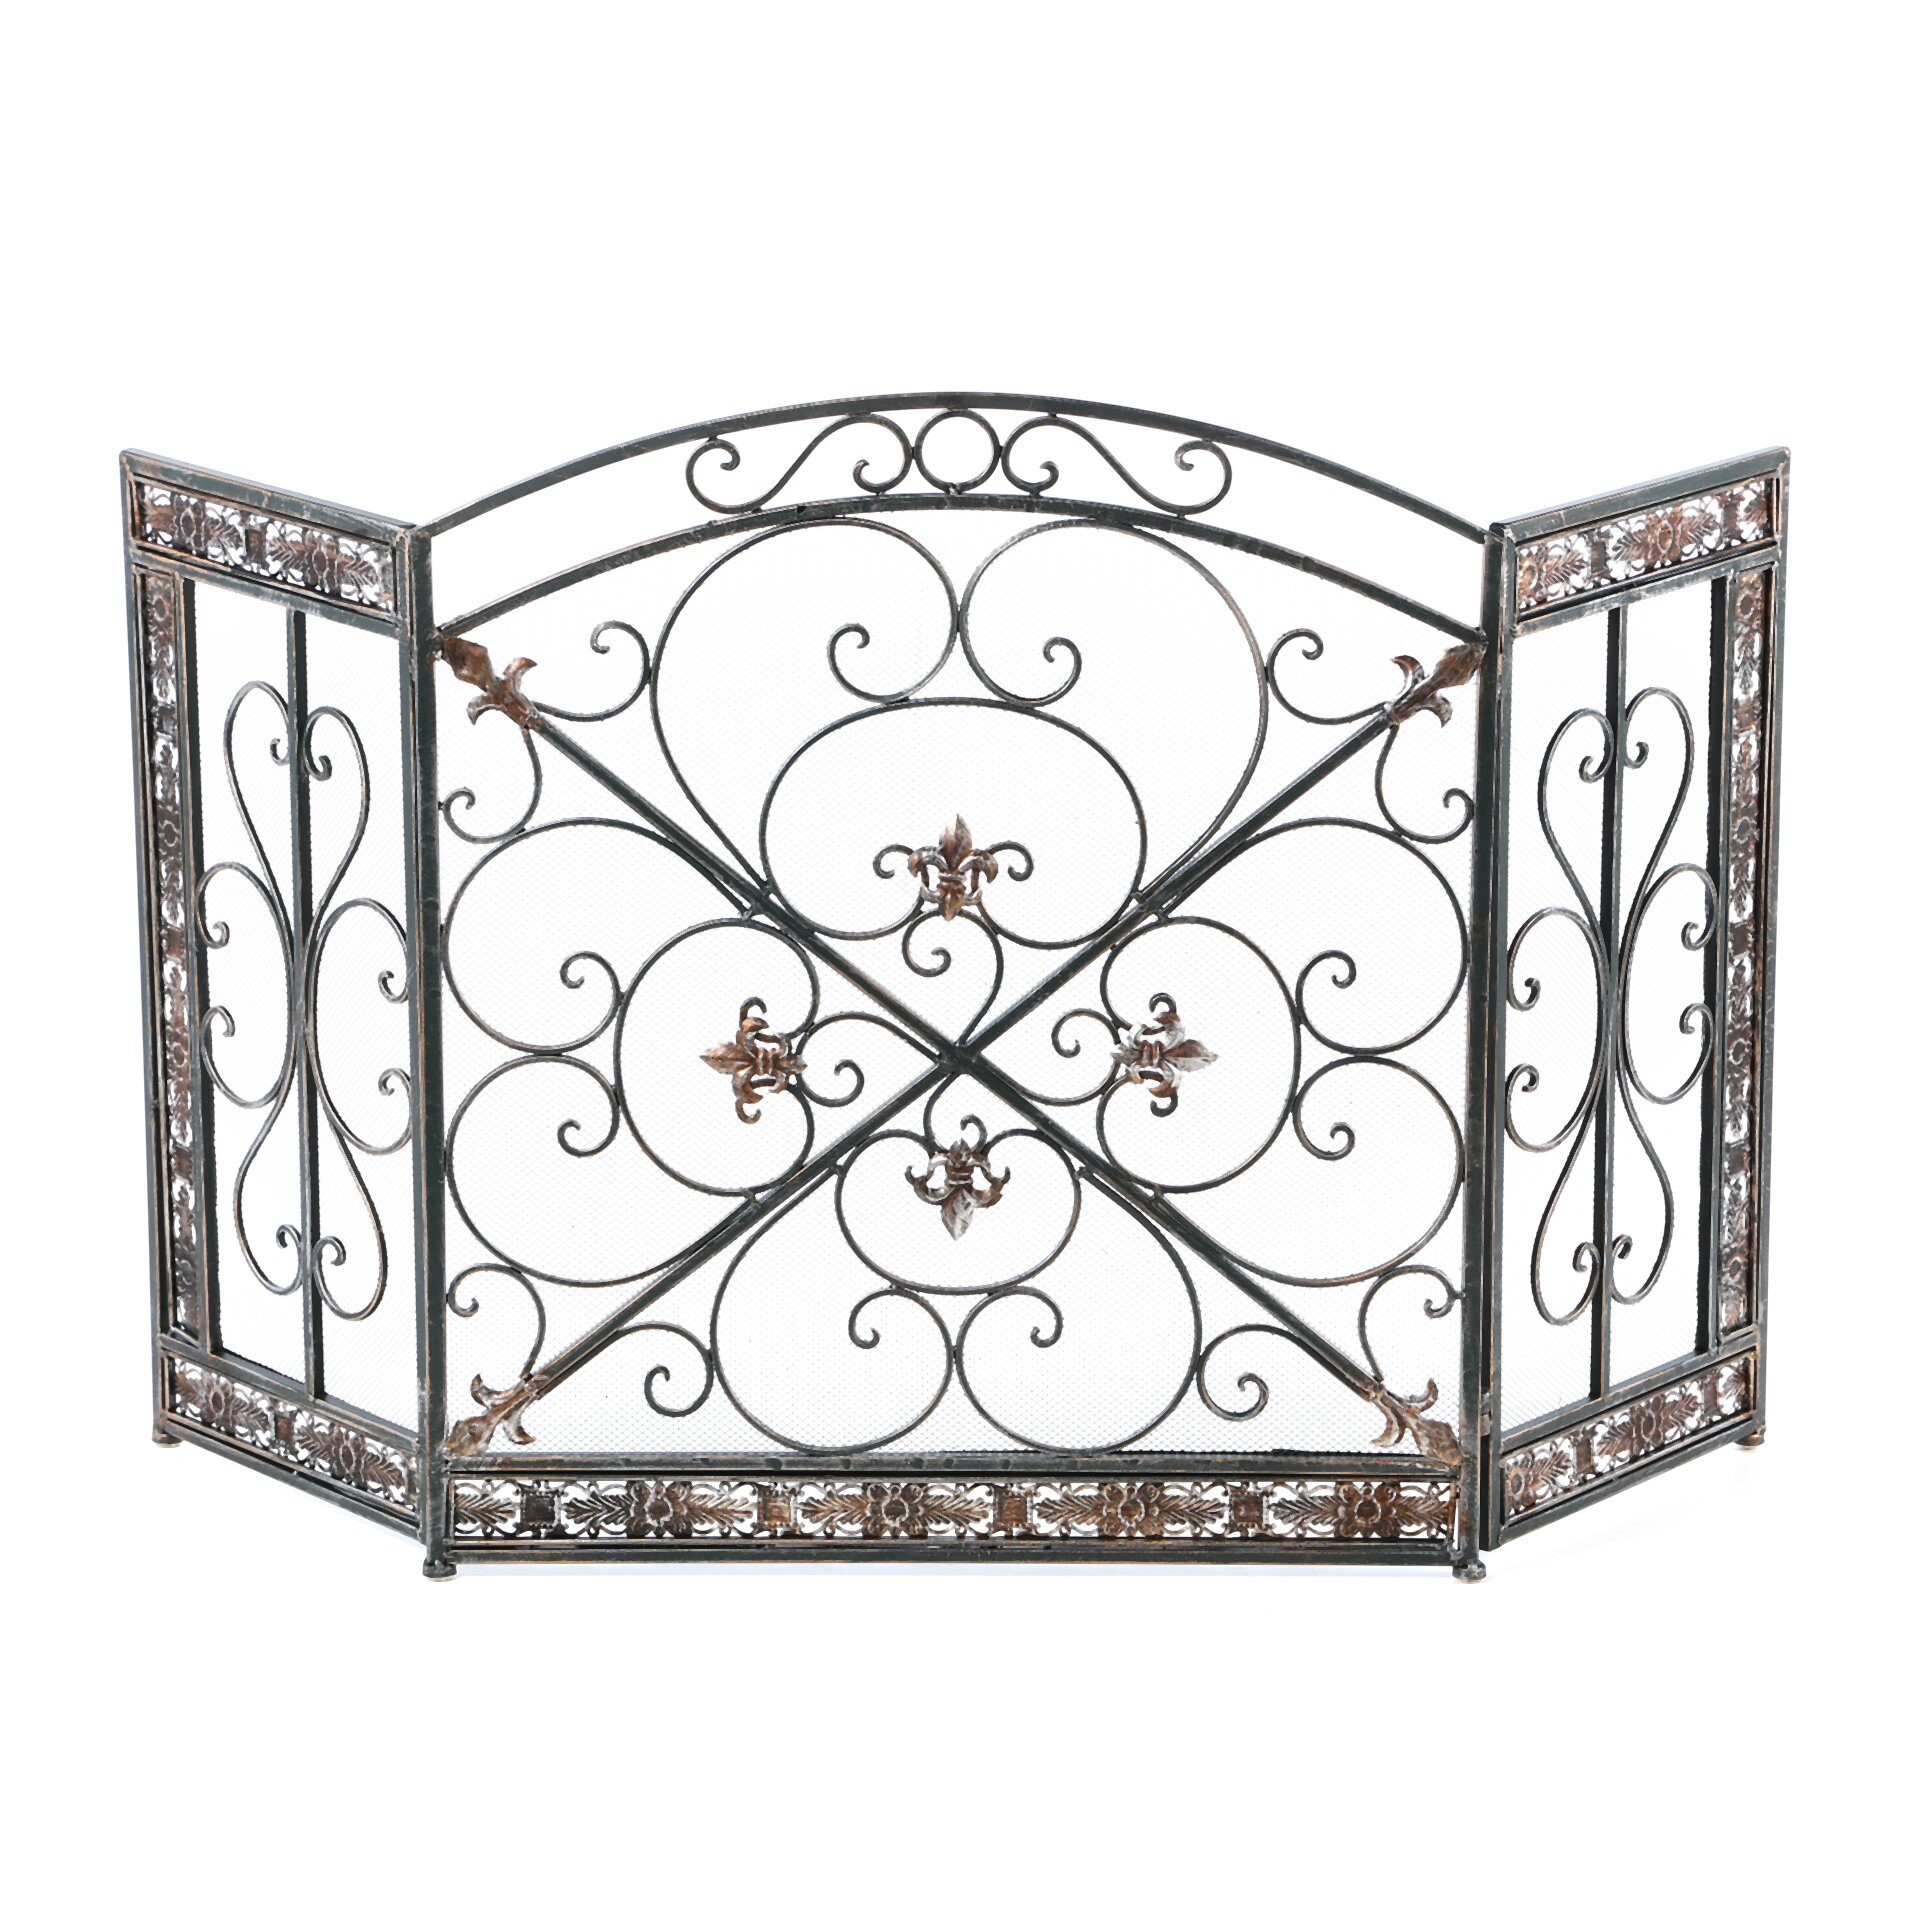 aspire fleur de lis 3 panel iron fireplace screen